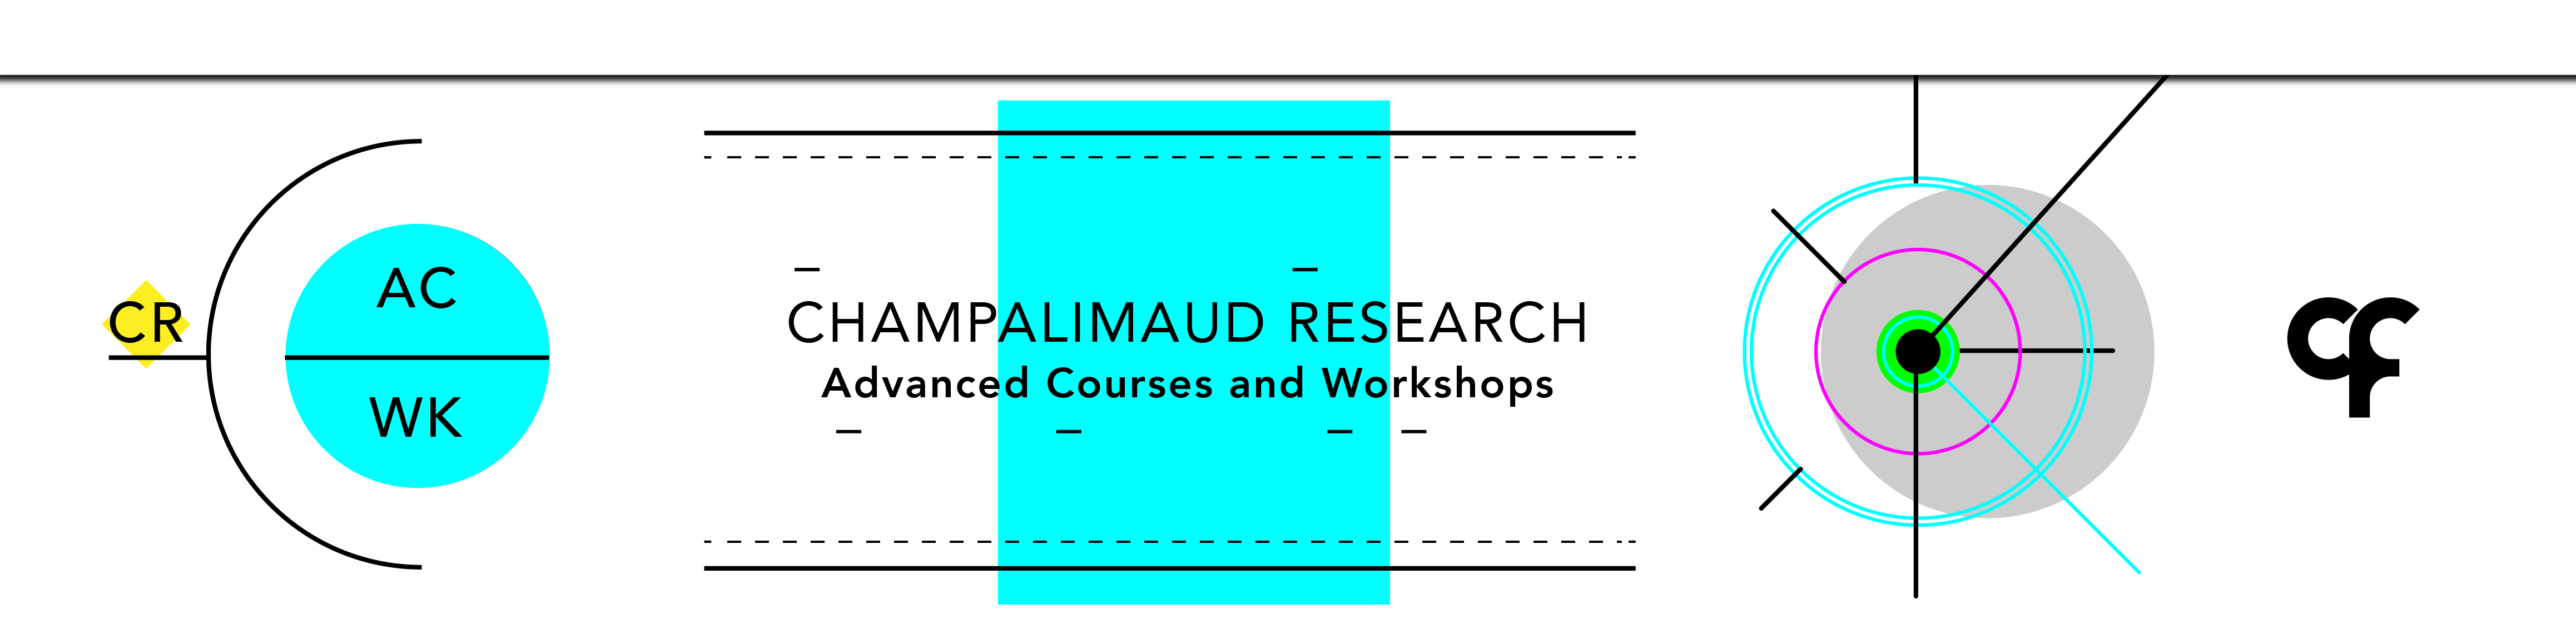 Champalimaud Research Advanced Courses and Workshops